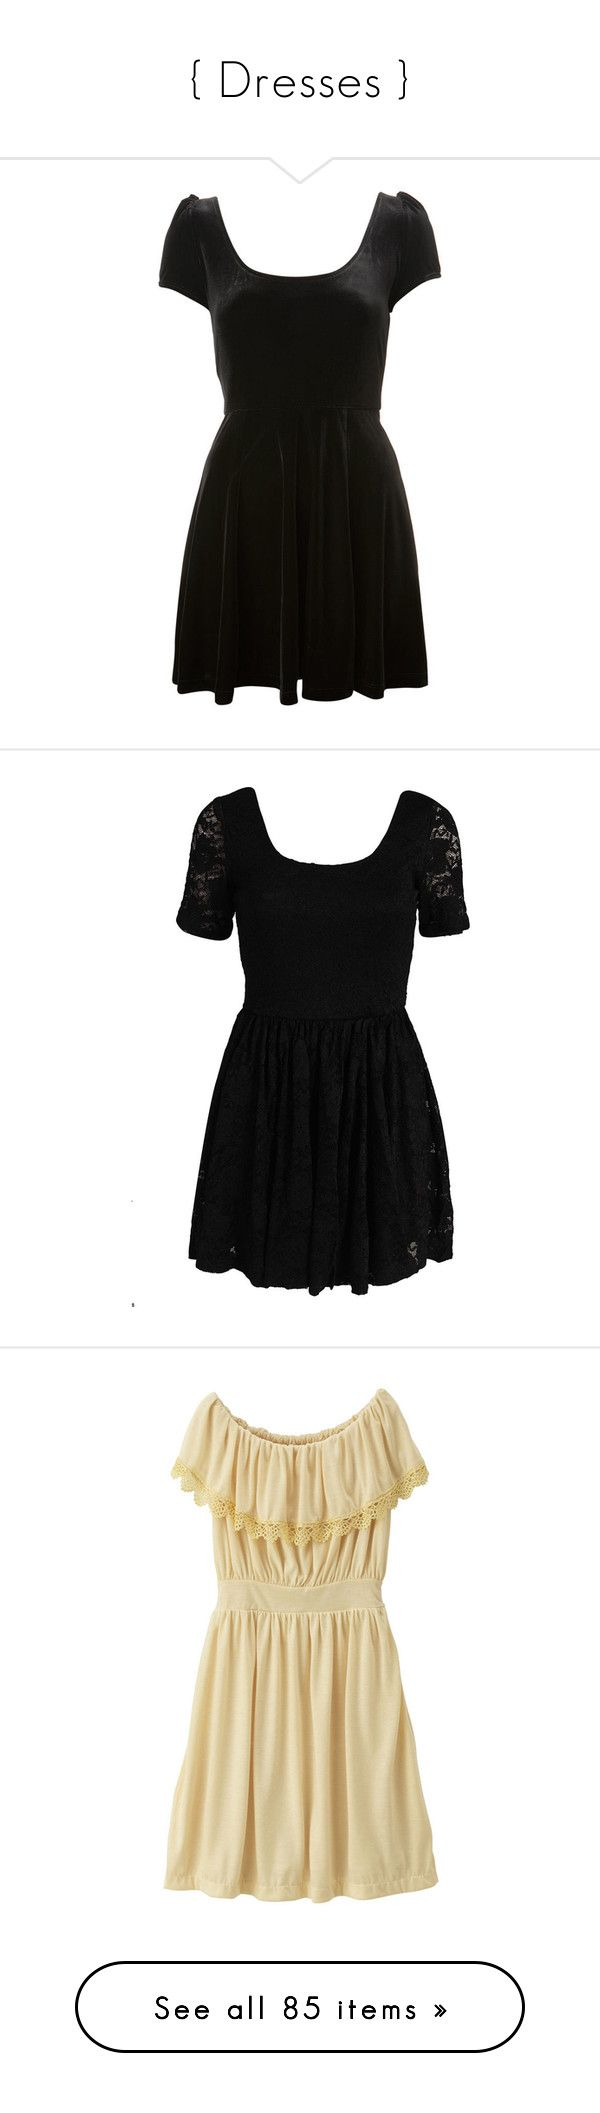 """{ Dresses }"" by golddustwomanxx ❤ liked on Polyvore featuring dresses, vestidos, short dress, black, women's clothing, velvet cocktail dresses, bow back dress, petite short dresses, short dresses and miss selfridge"